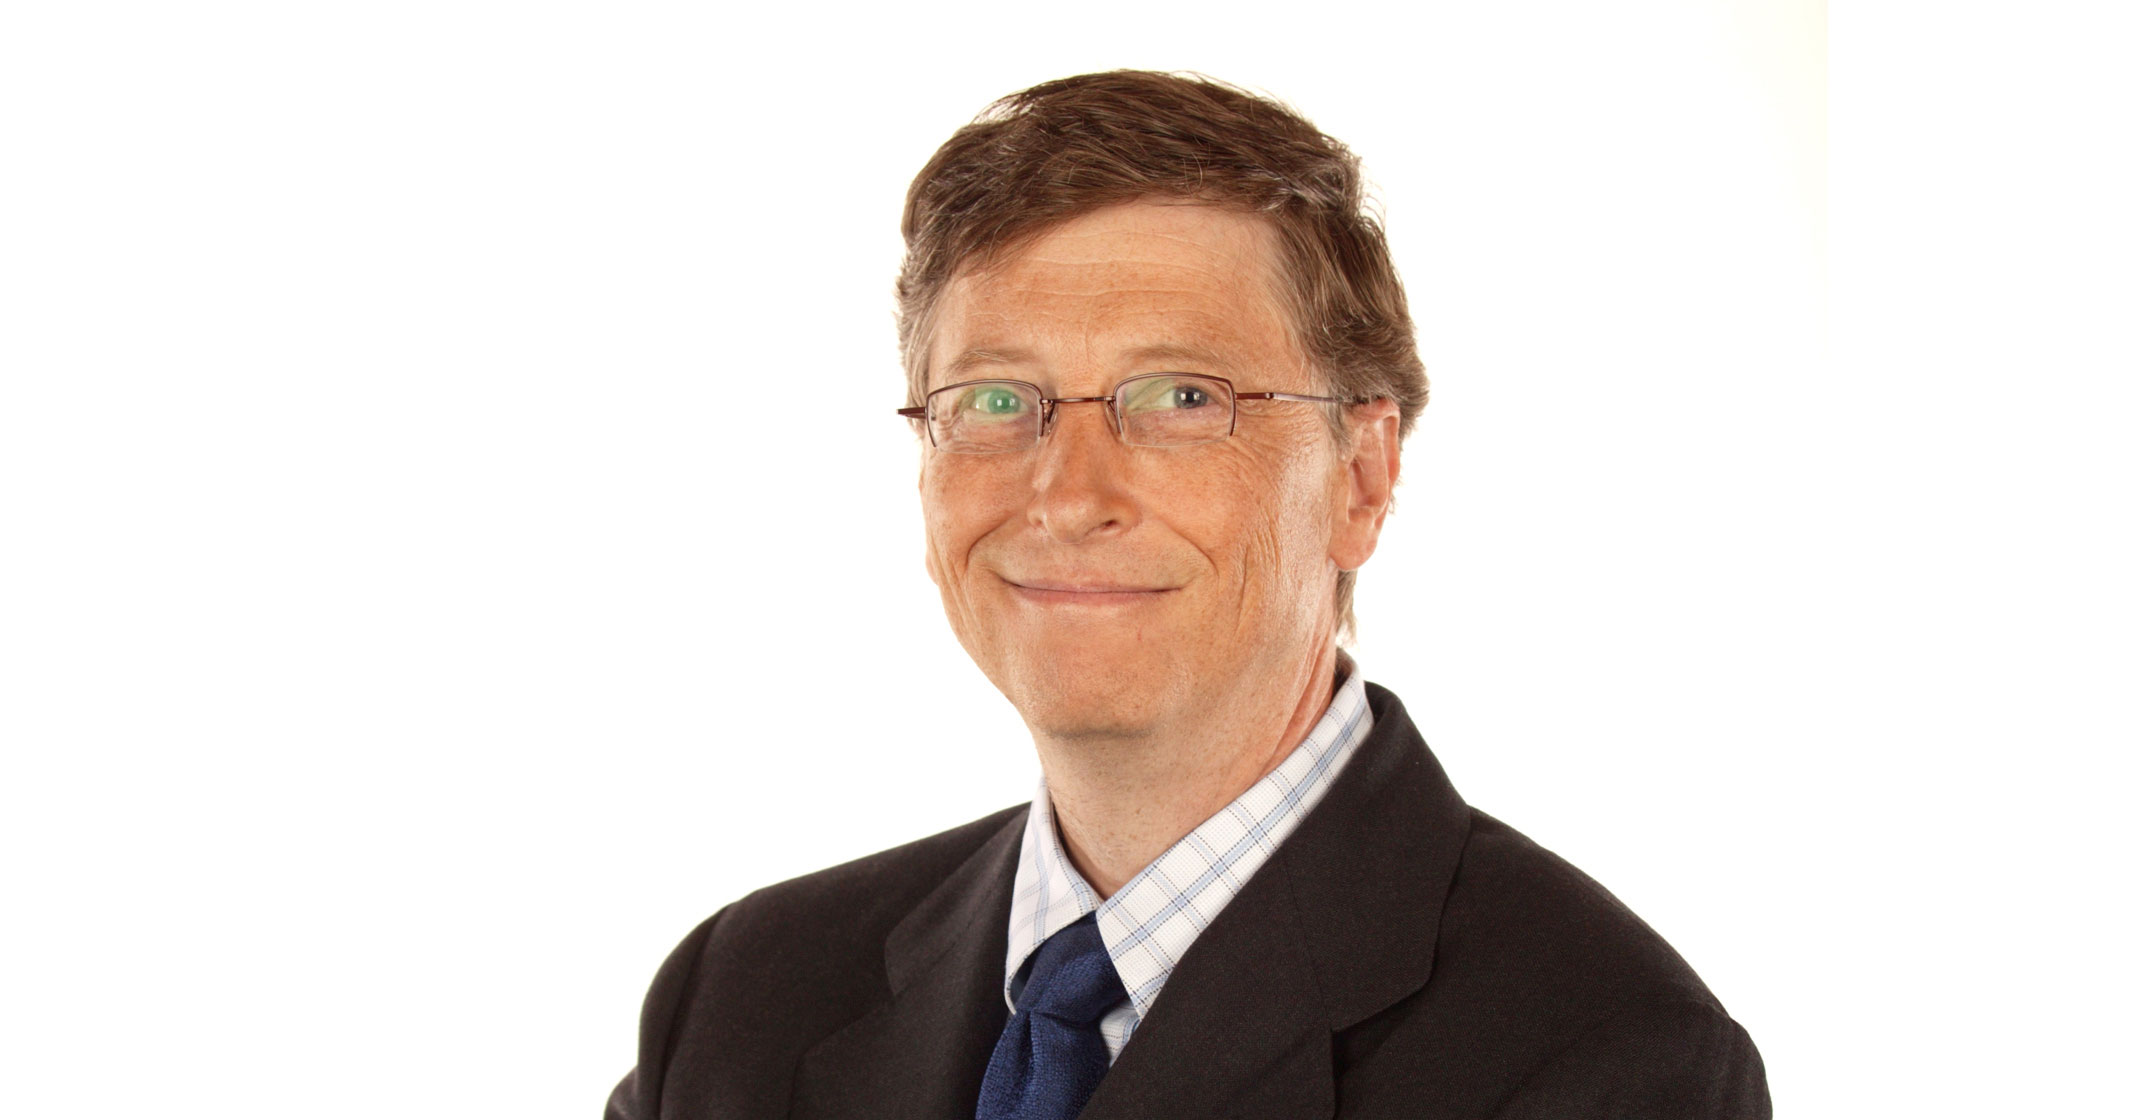 Bill Gates donates $4.6bn of fortune